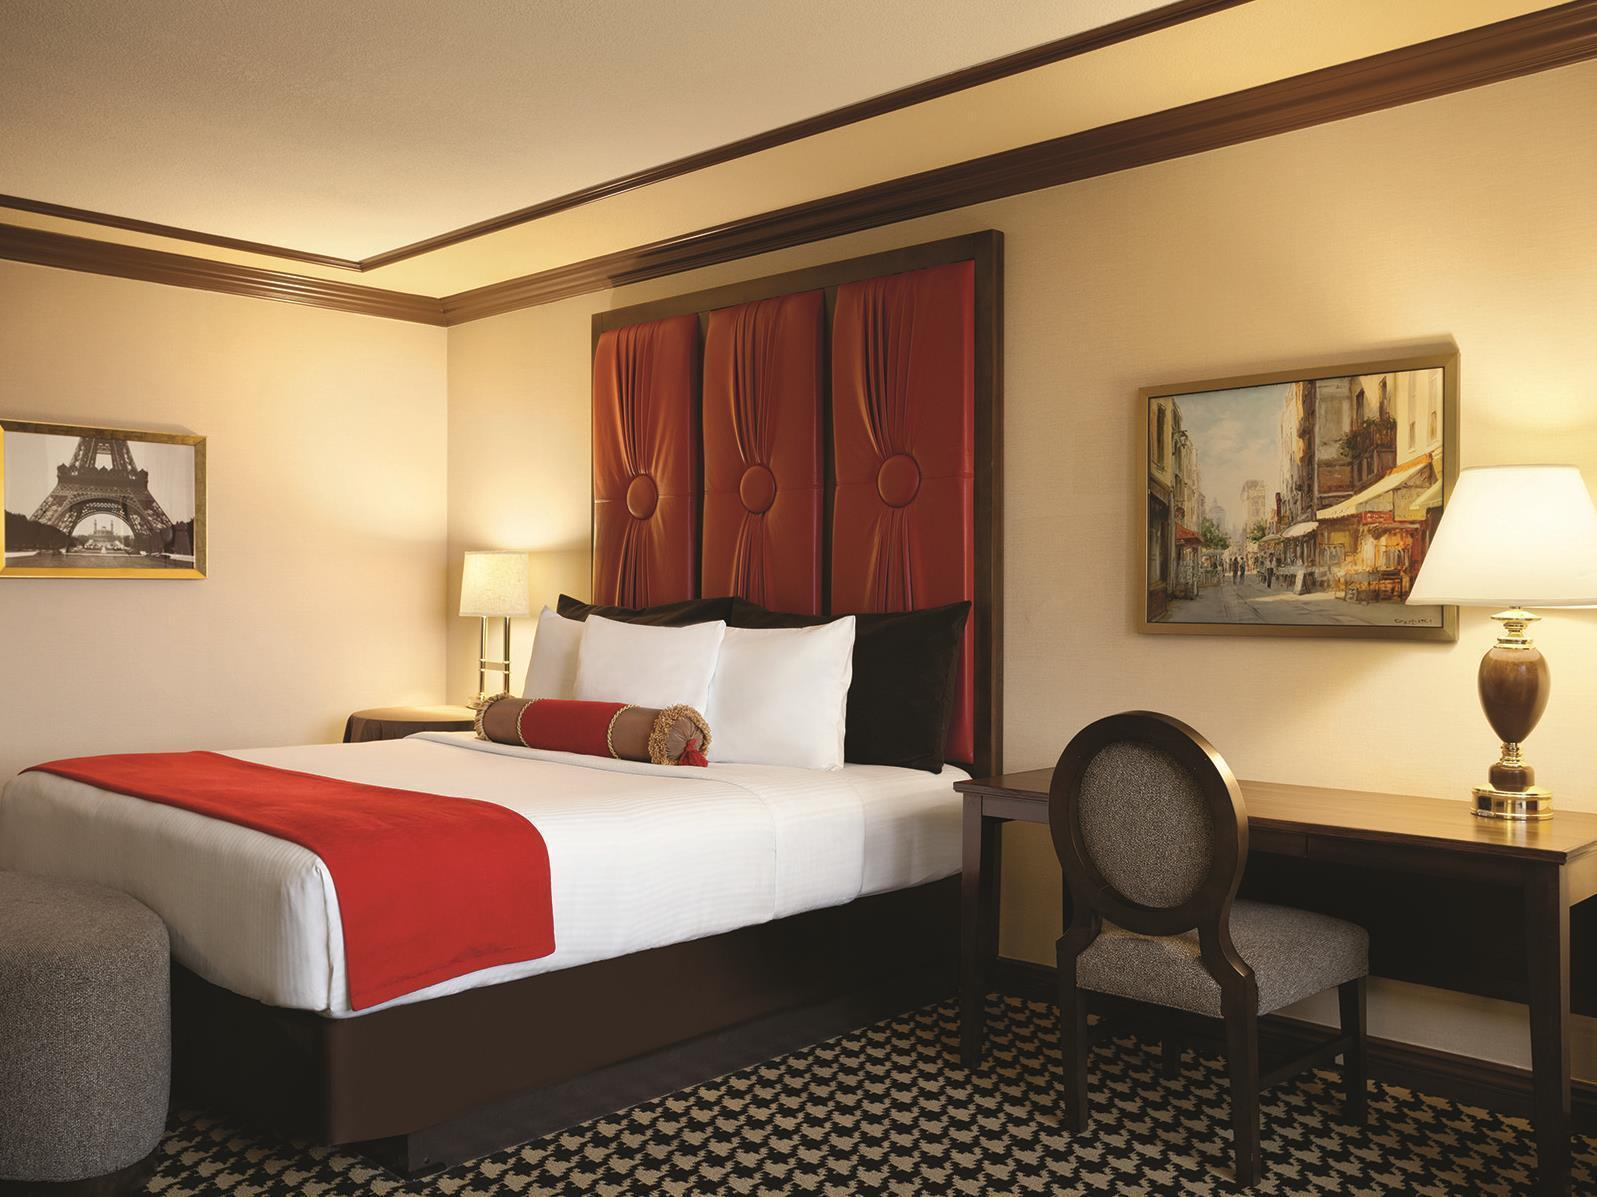 Book Paris Las Vegas Hotel Las Vegas Nv United States